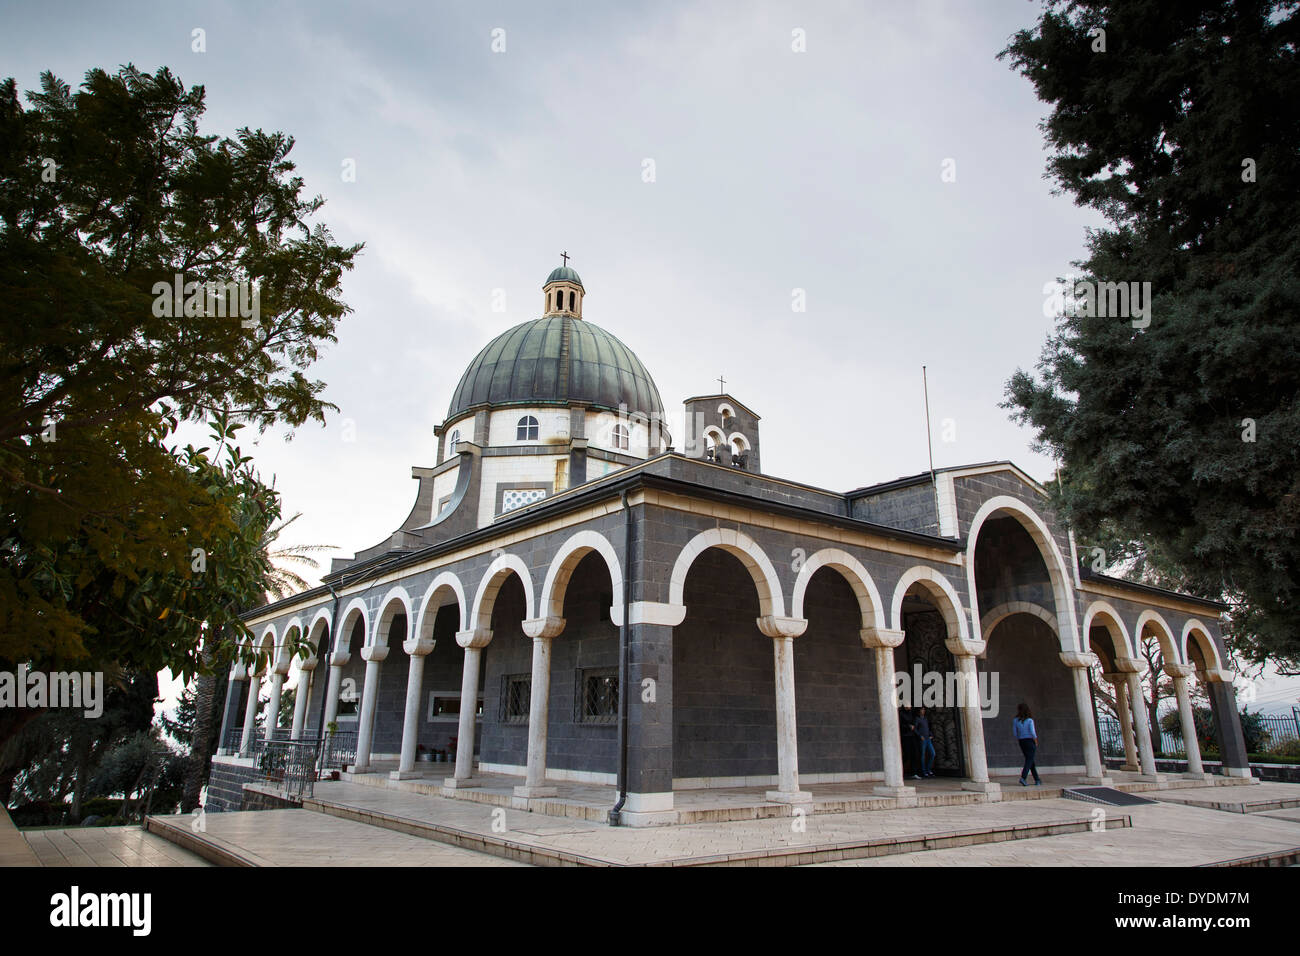 Fransiscan Monastery at the Mount of the Beatitudes, Tabgha, Sea of Galilee, Israel. Stock Photo